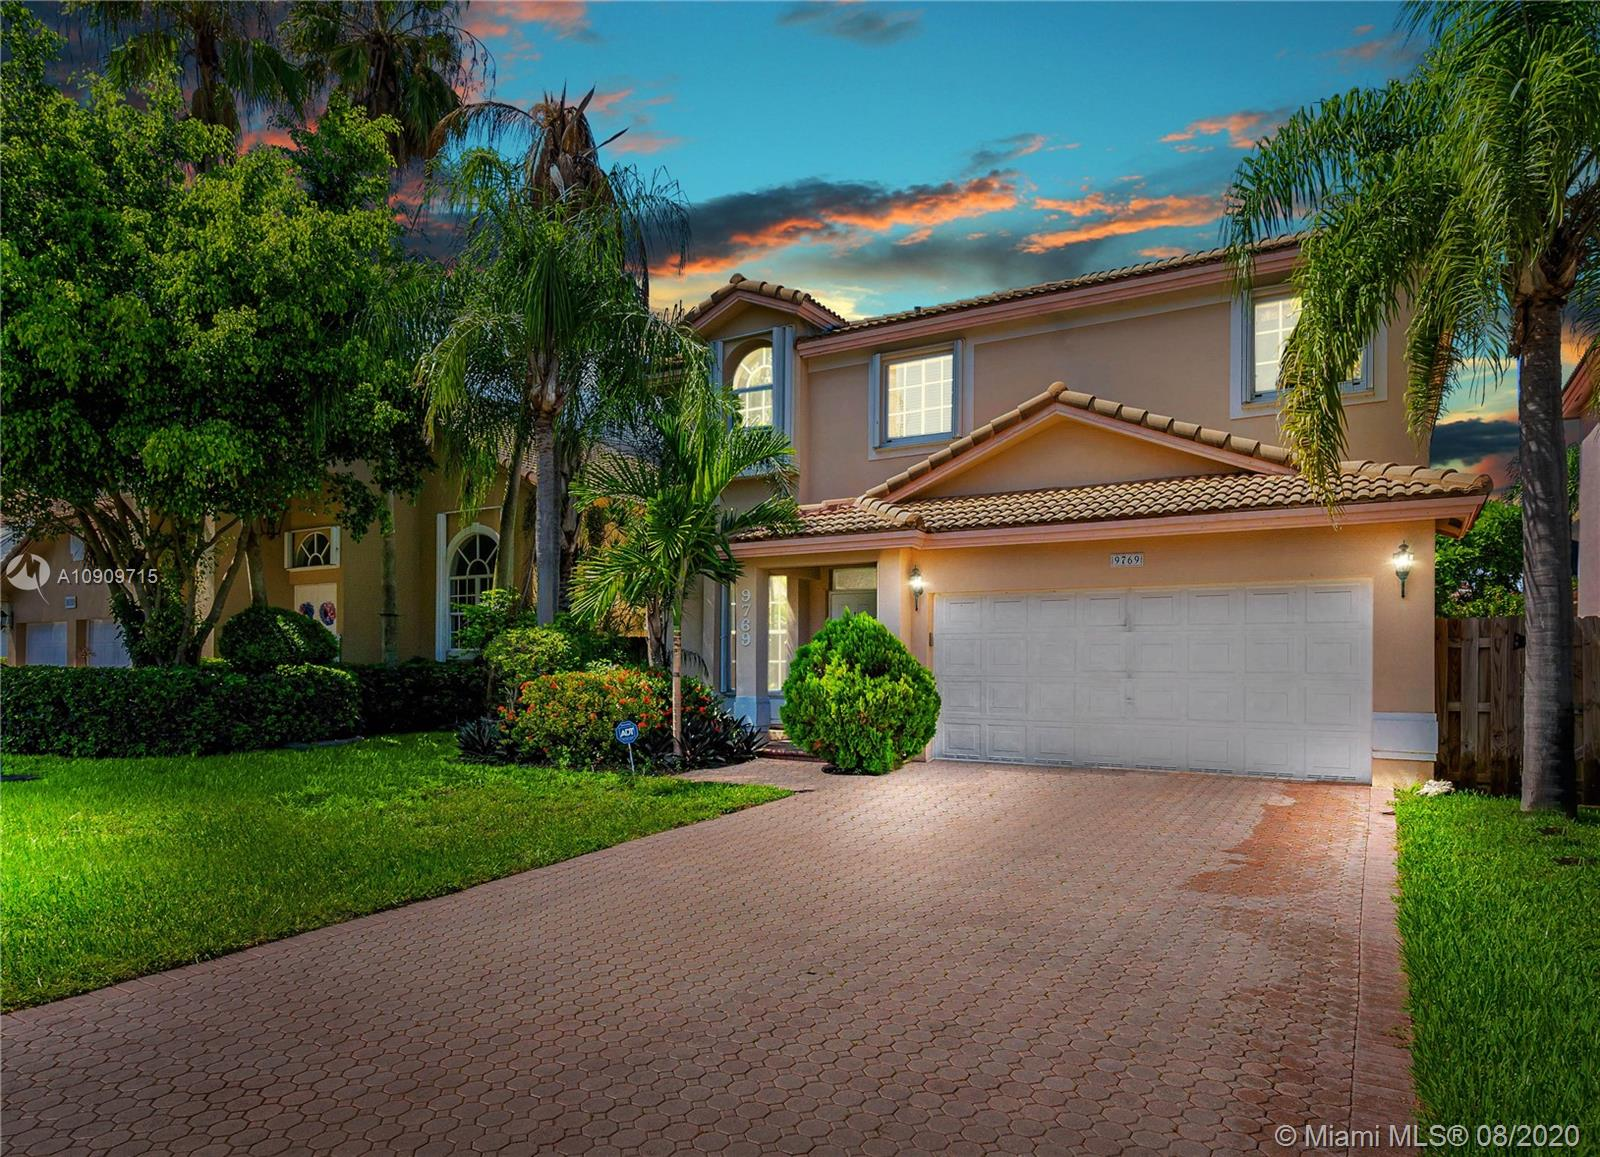 9769 NW 29th Ter, Doral FL 33172